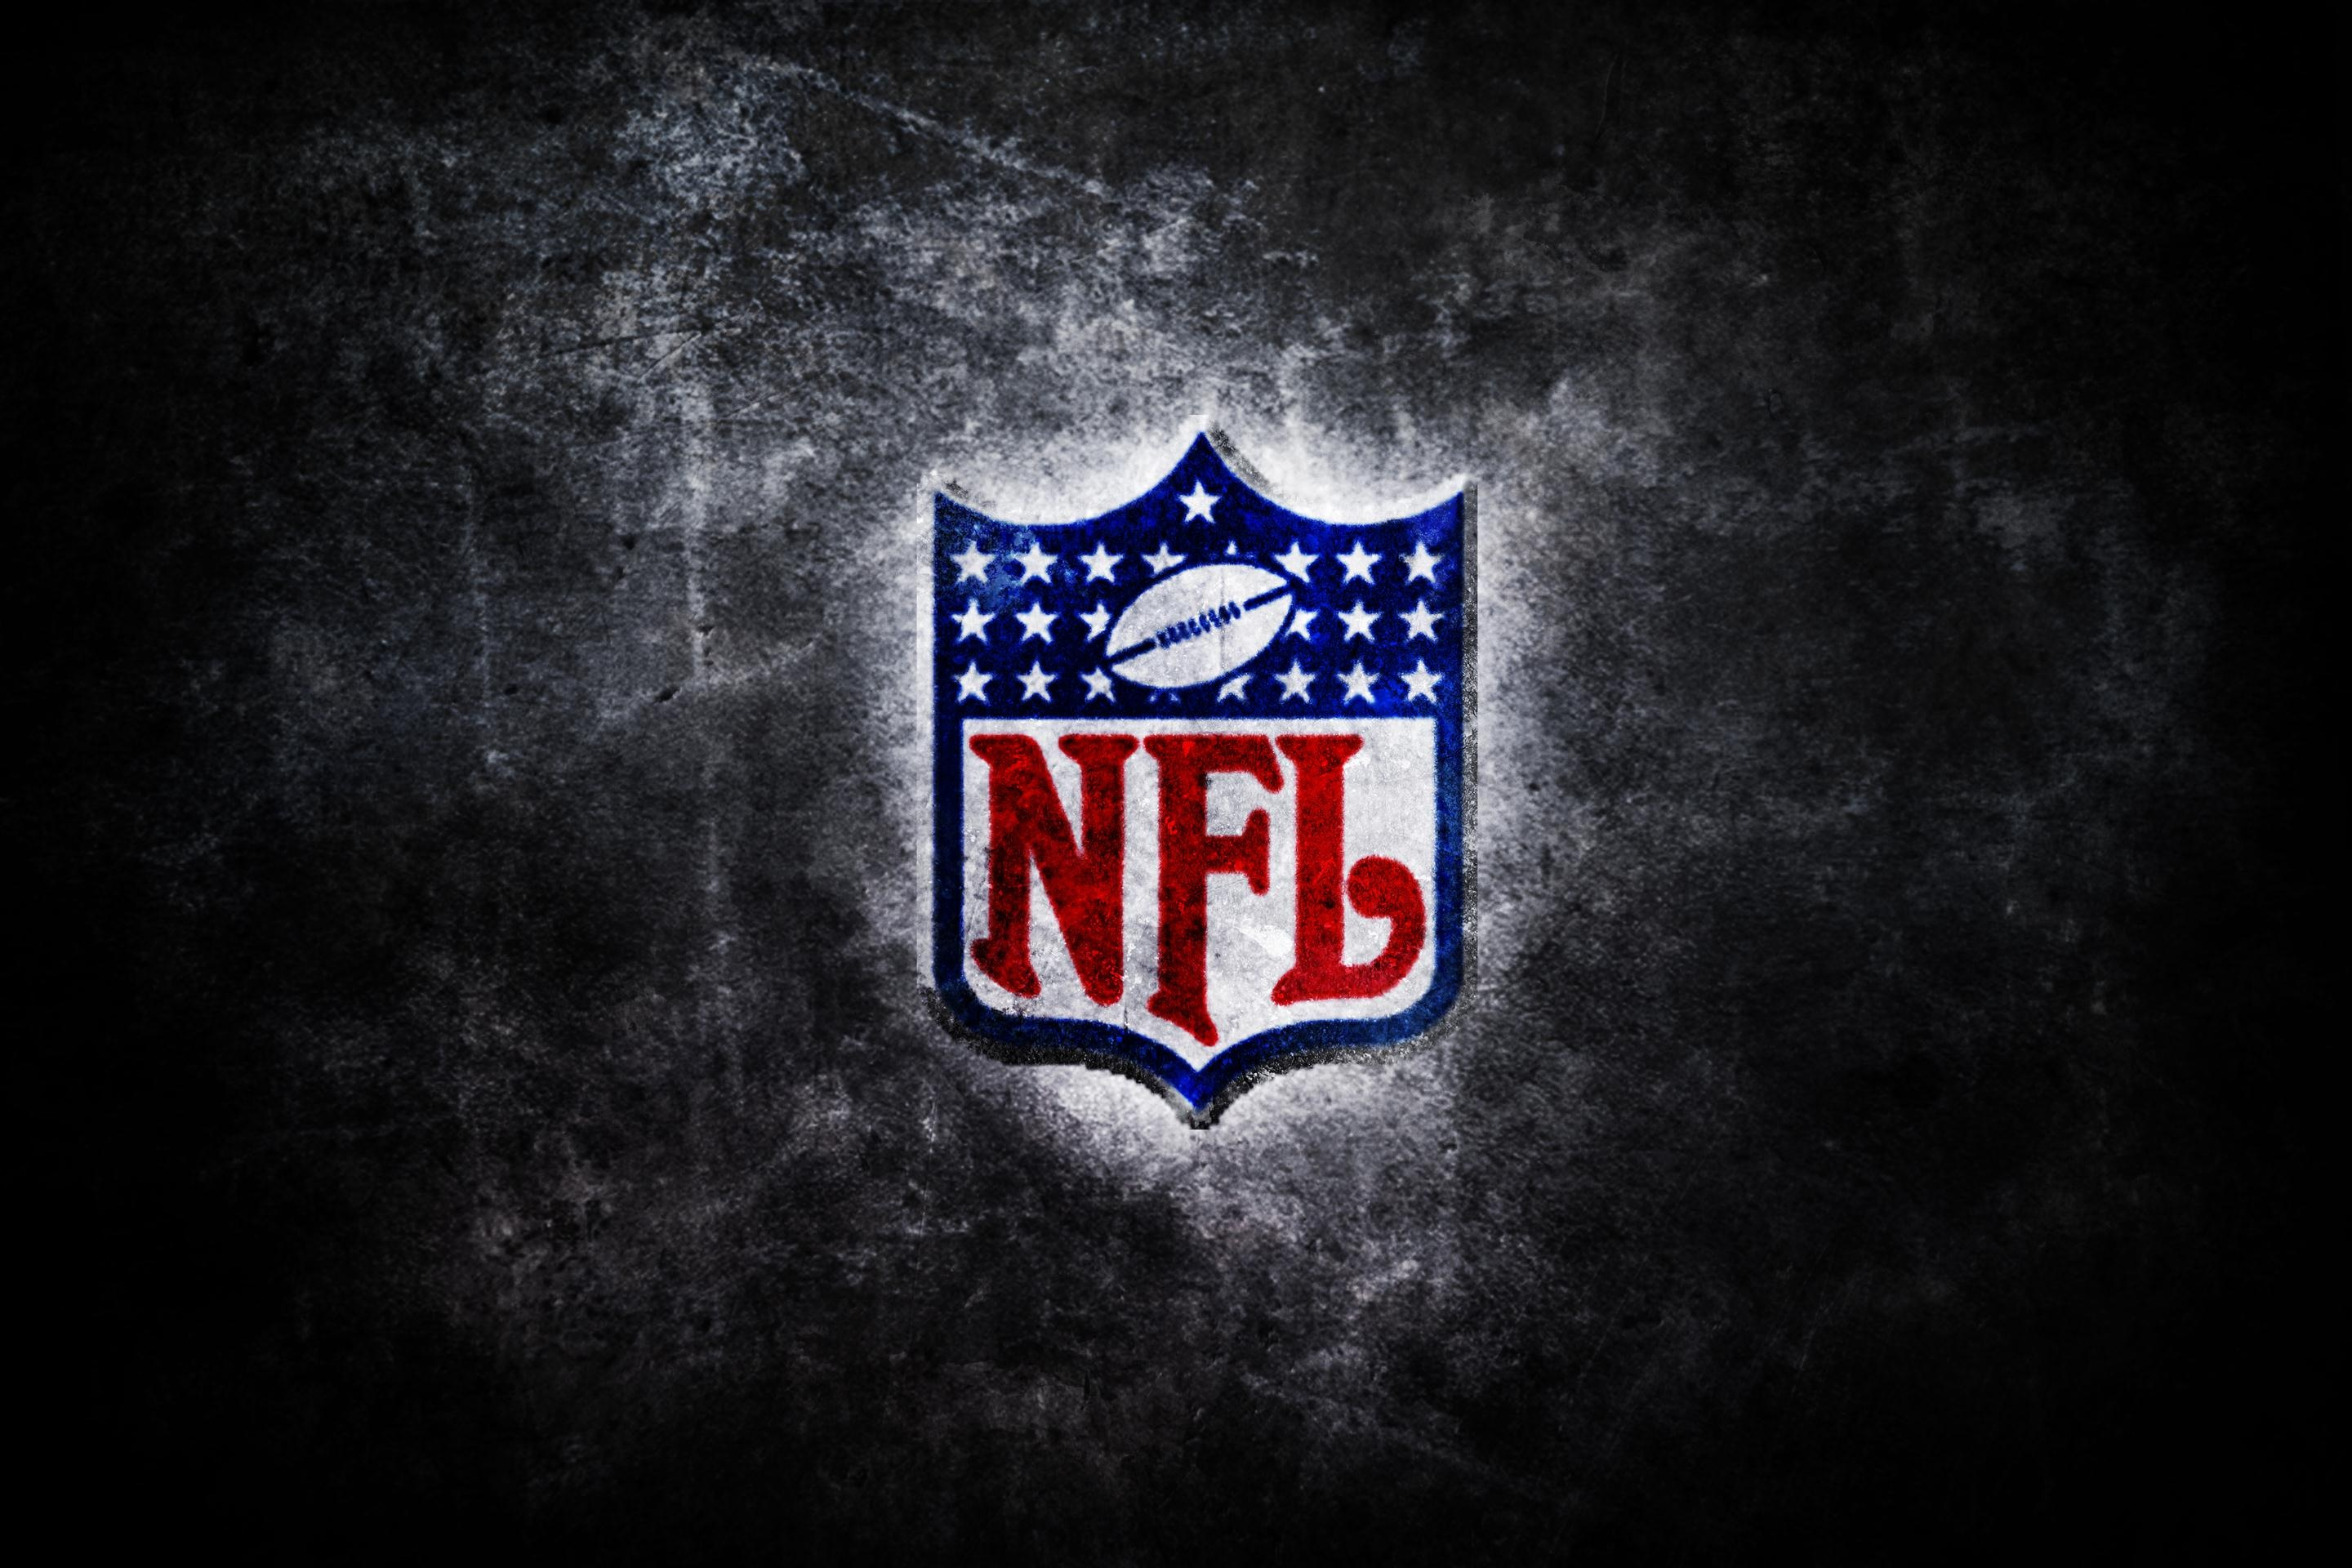 NFL HD Wallpapers 2880x1920